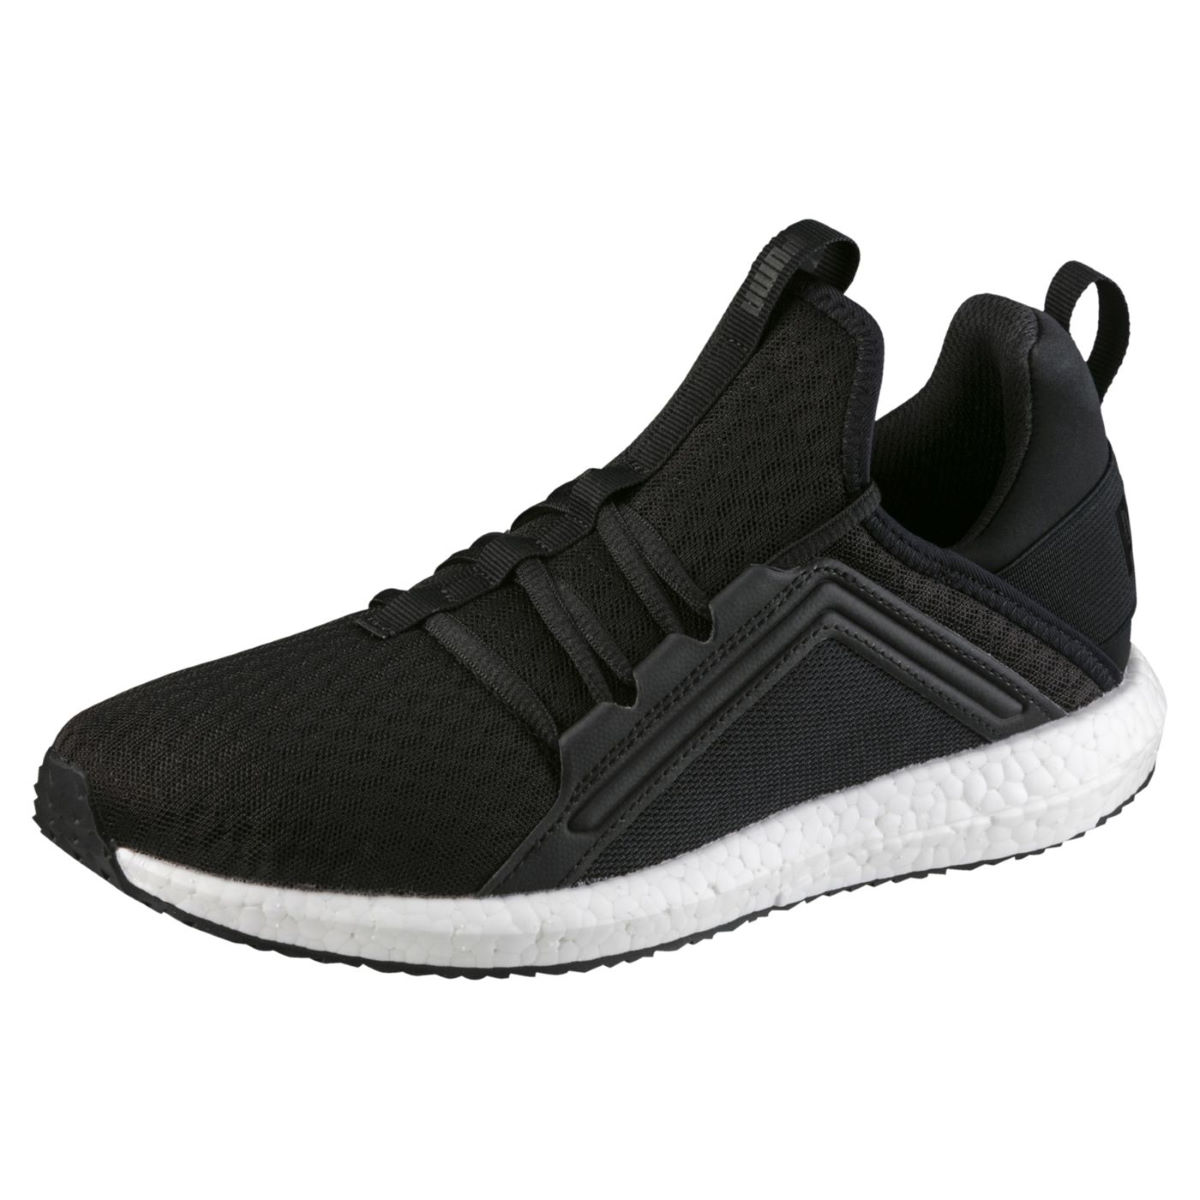 Chaussures Femme Puma Mega NRGY Knit - UK 7 puma black